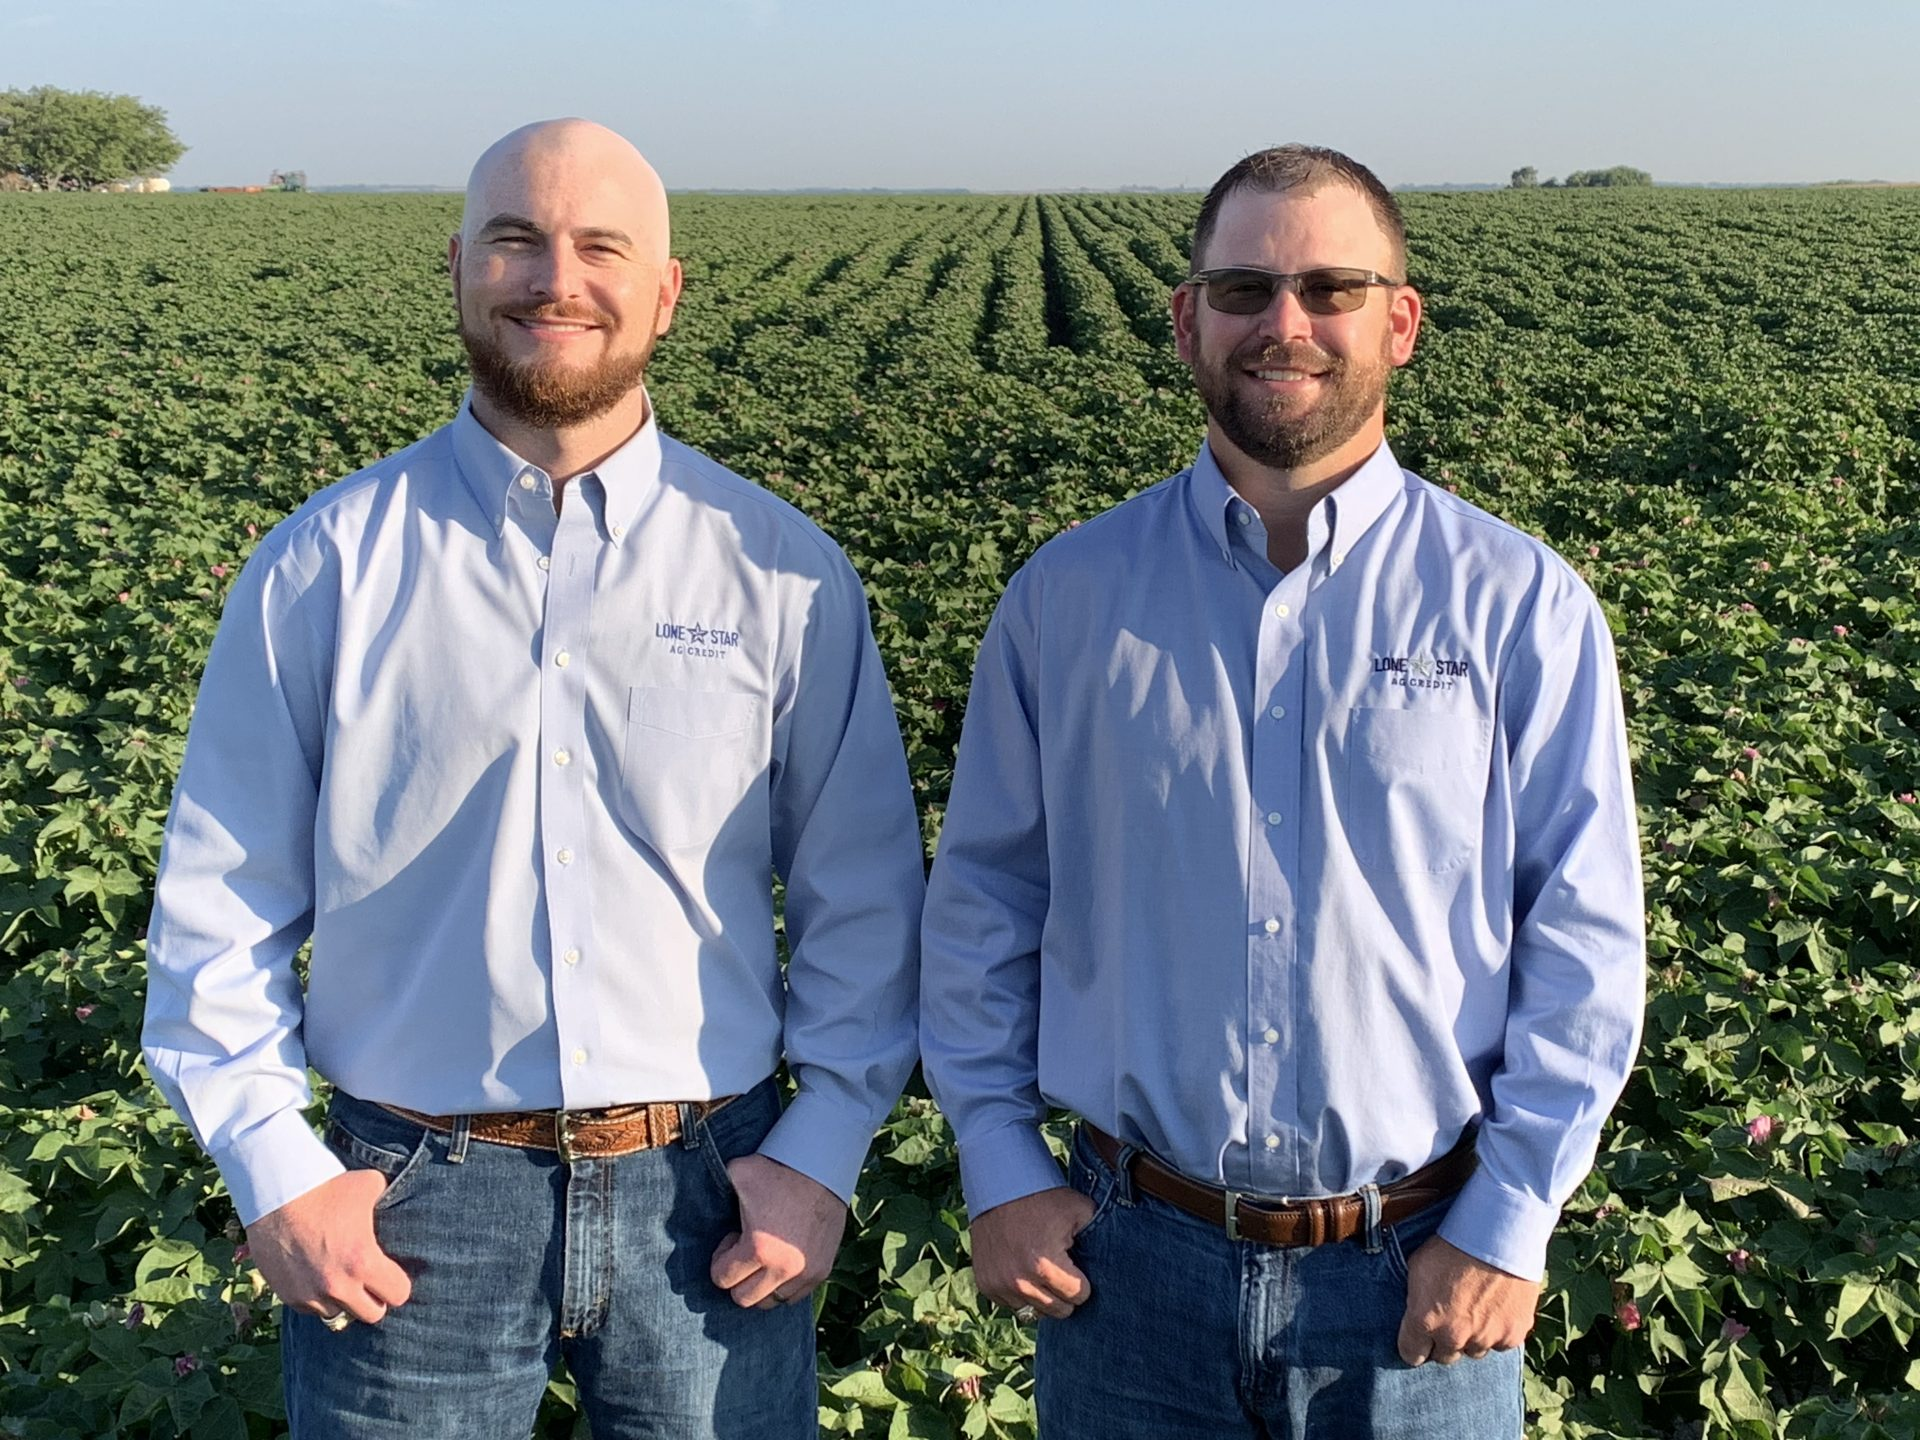 Lone Star Ag Credit lenders, Patrick Hejl and Aaron Nors stand by a crop in the field.